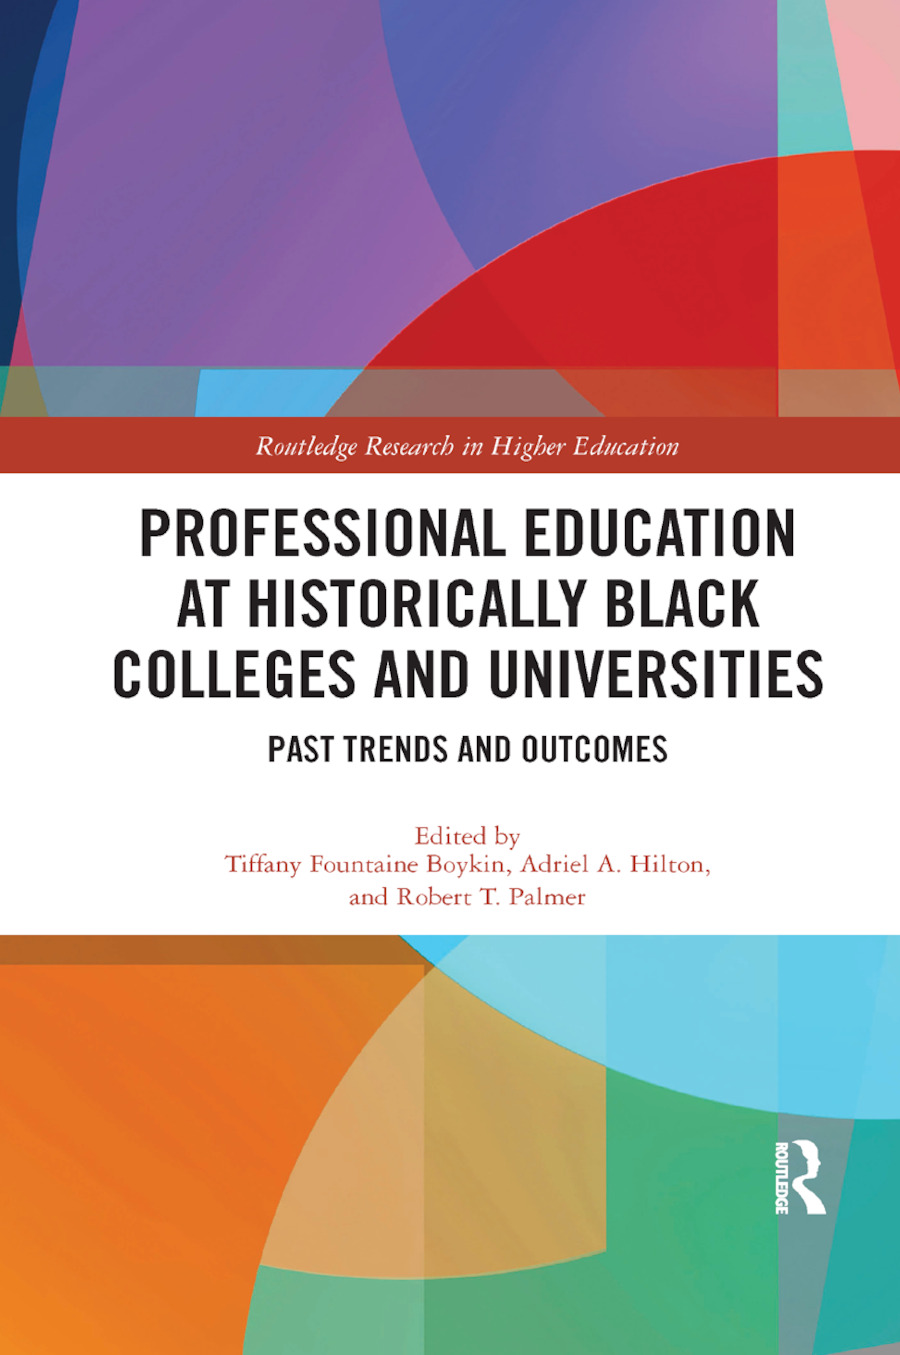 Professional Education at Historically Black Colleges and Universities: Past Trends and Future Outcomes book cover